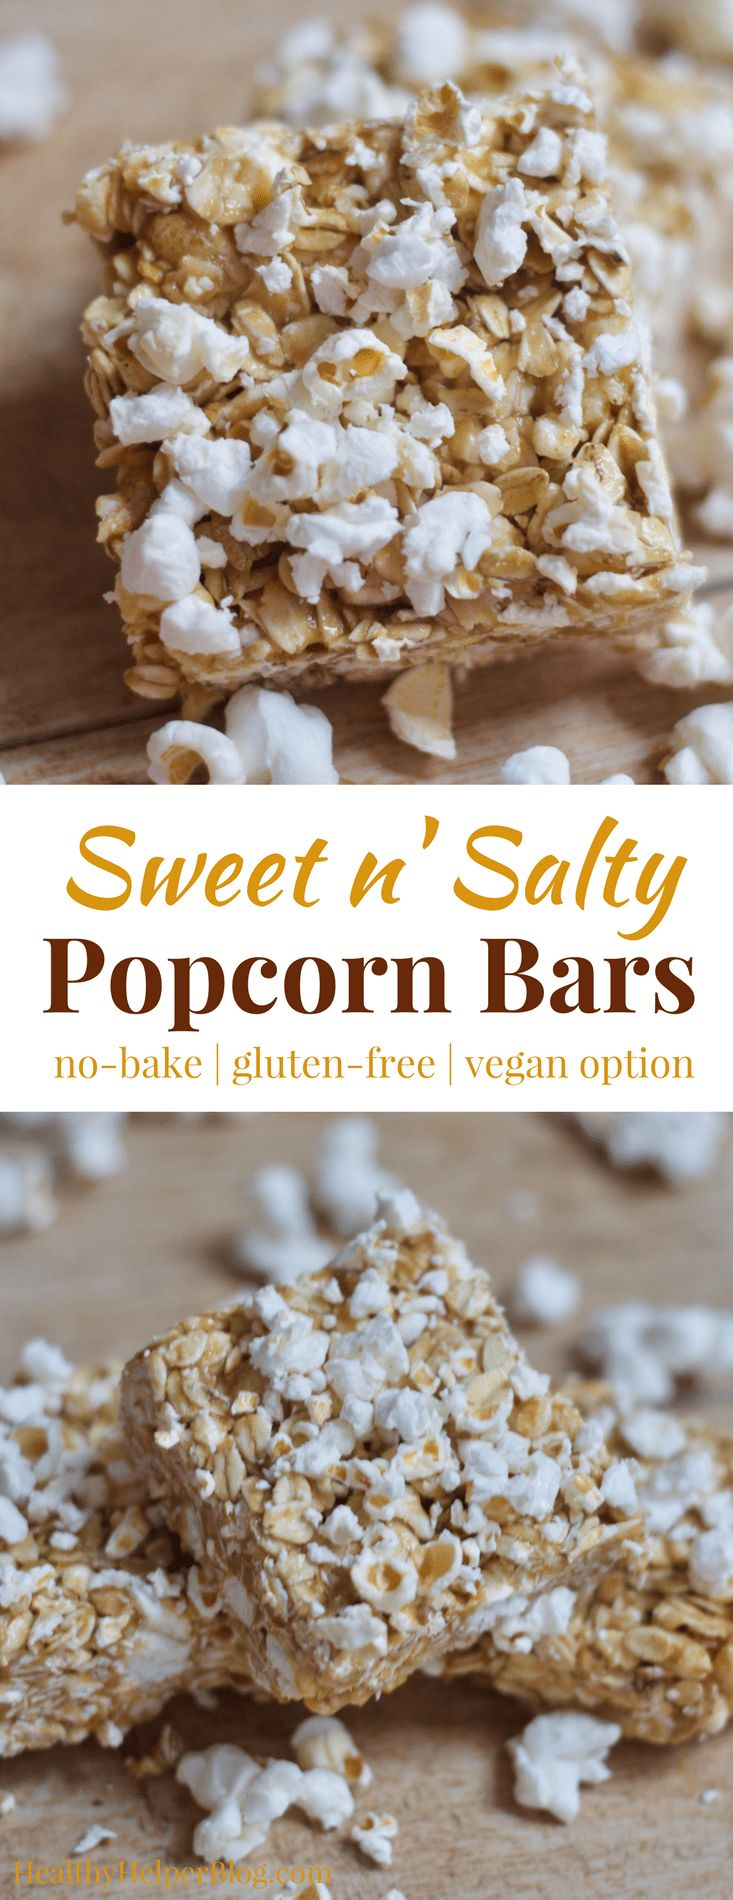 Sweet n' Salty Honey PB Popcorn Bars   Healthy Helper @Healthy_Helper The sweet n' salty snack bar of your dreams is here! These Honey Peanut Butter Popcorn bars are sure to delight any tastebuds. No baking required, gluten-free, and easily made vegan, too!